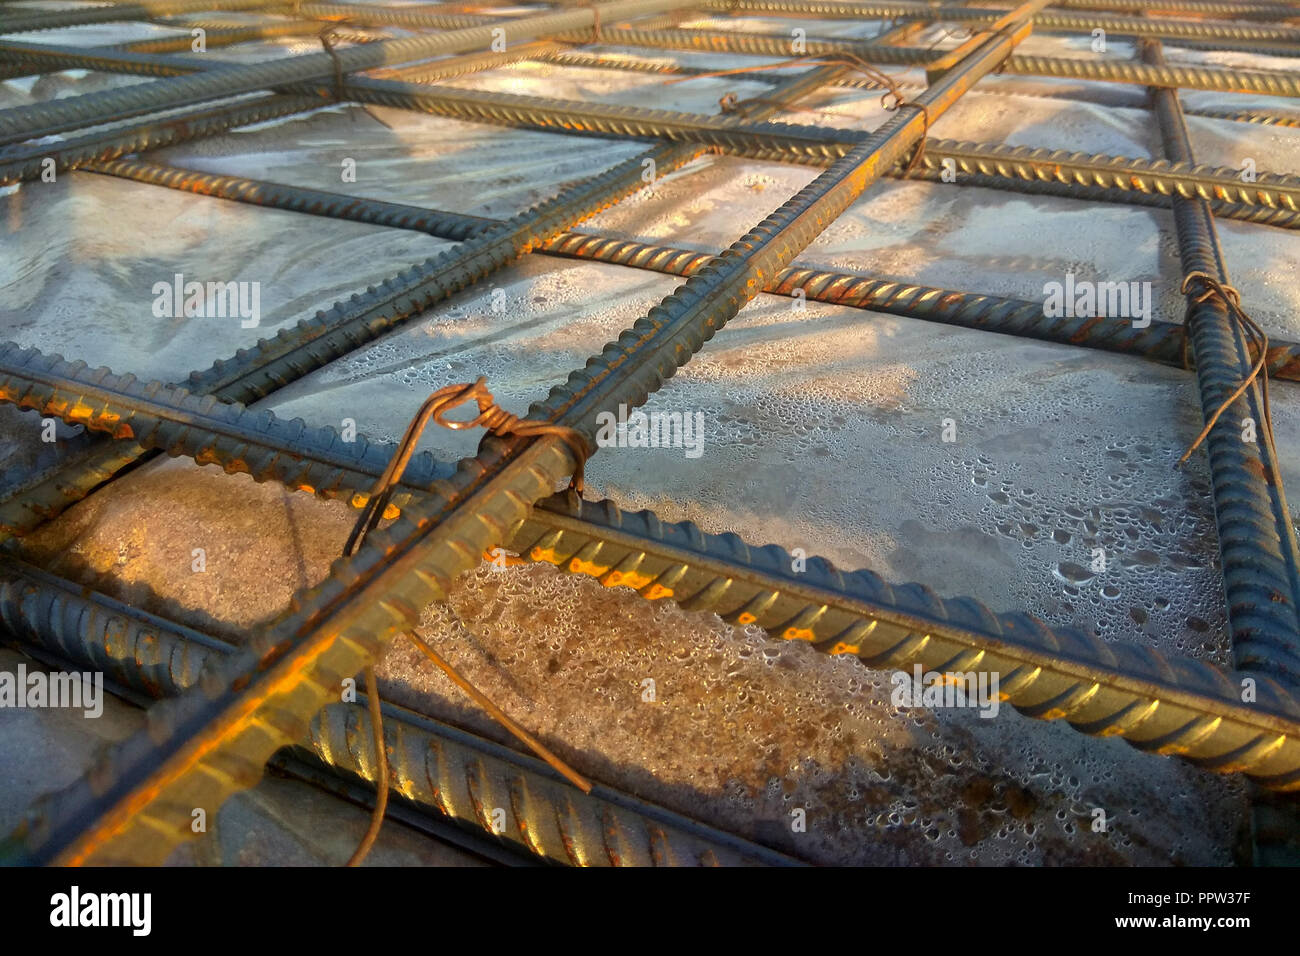 Construction workers fabricating steel reinforcement bar at the construction site 2018 Stock Photo